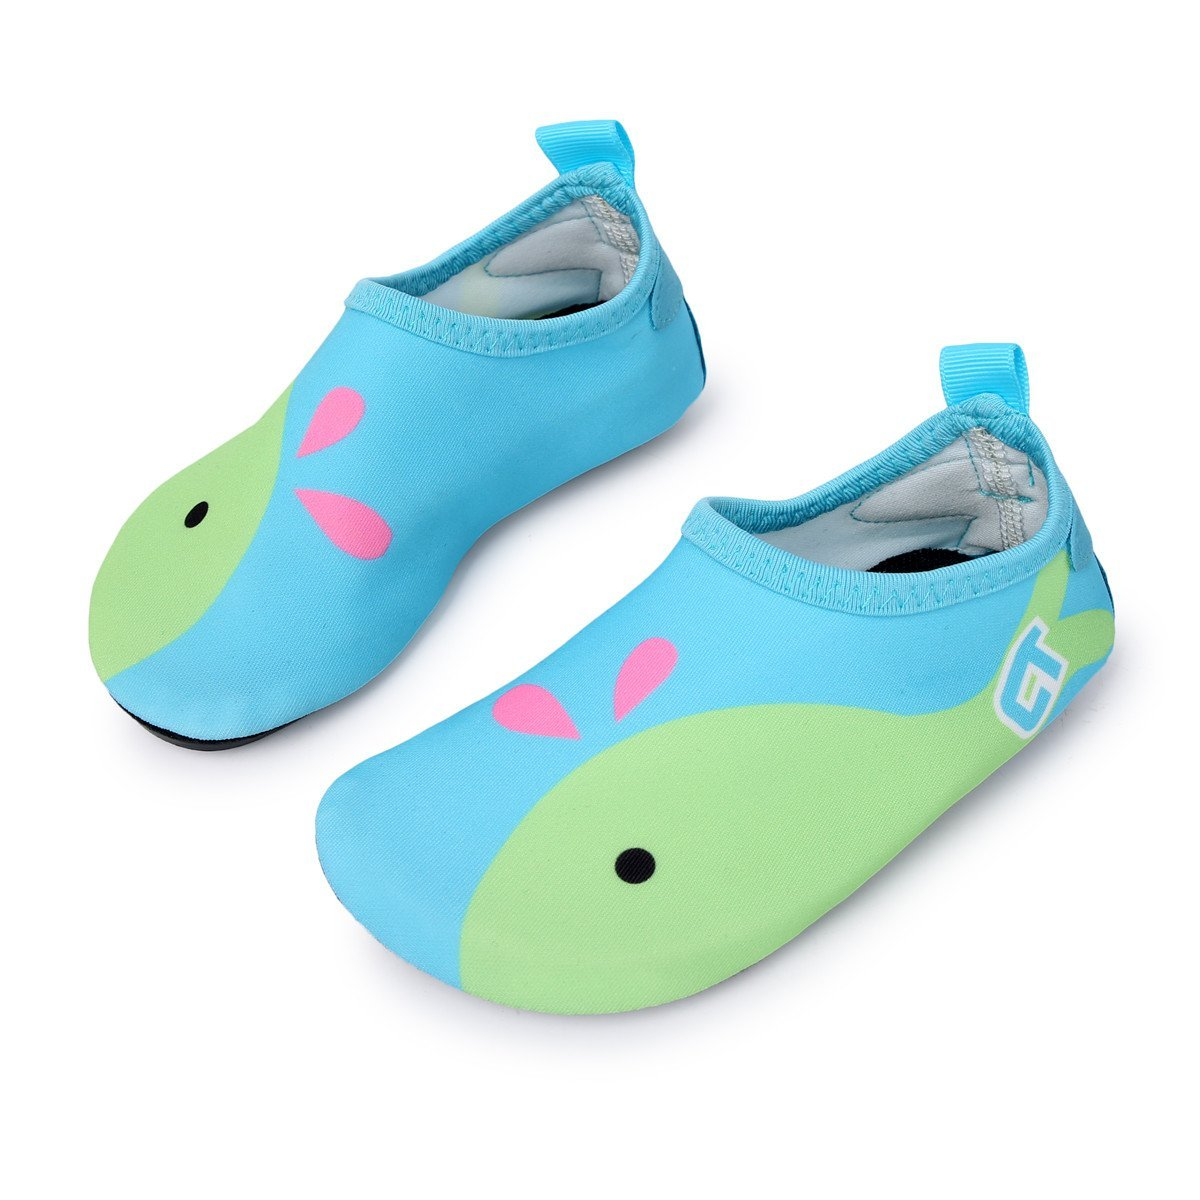 L-RUN Boys Girls Swim Shoes Summer Beach Pool Swim Shoe Aqua Sock Light Blue 2.5-3.5=EU34-35